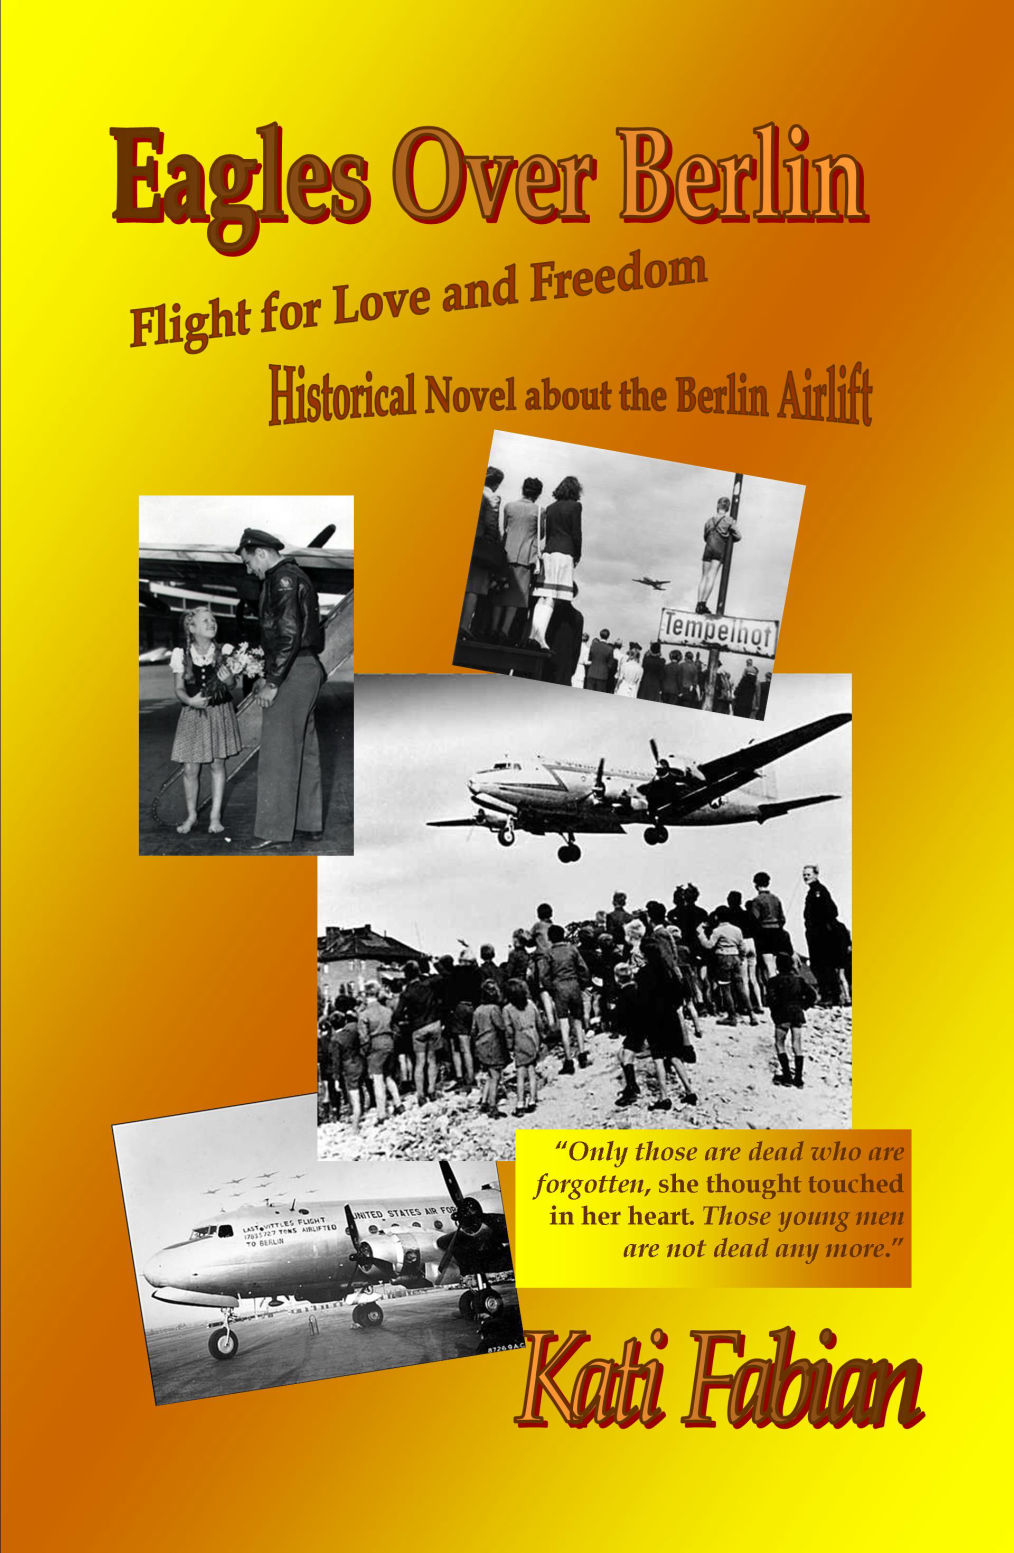 Eagles Over Berlin, Kati Fabian, Berlin Airlift, historical novel, Cold War, Air Force